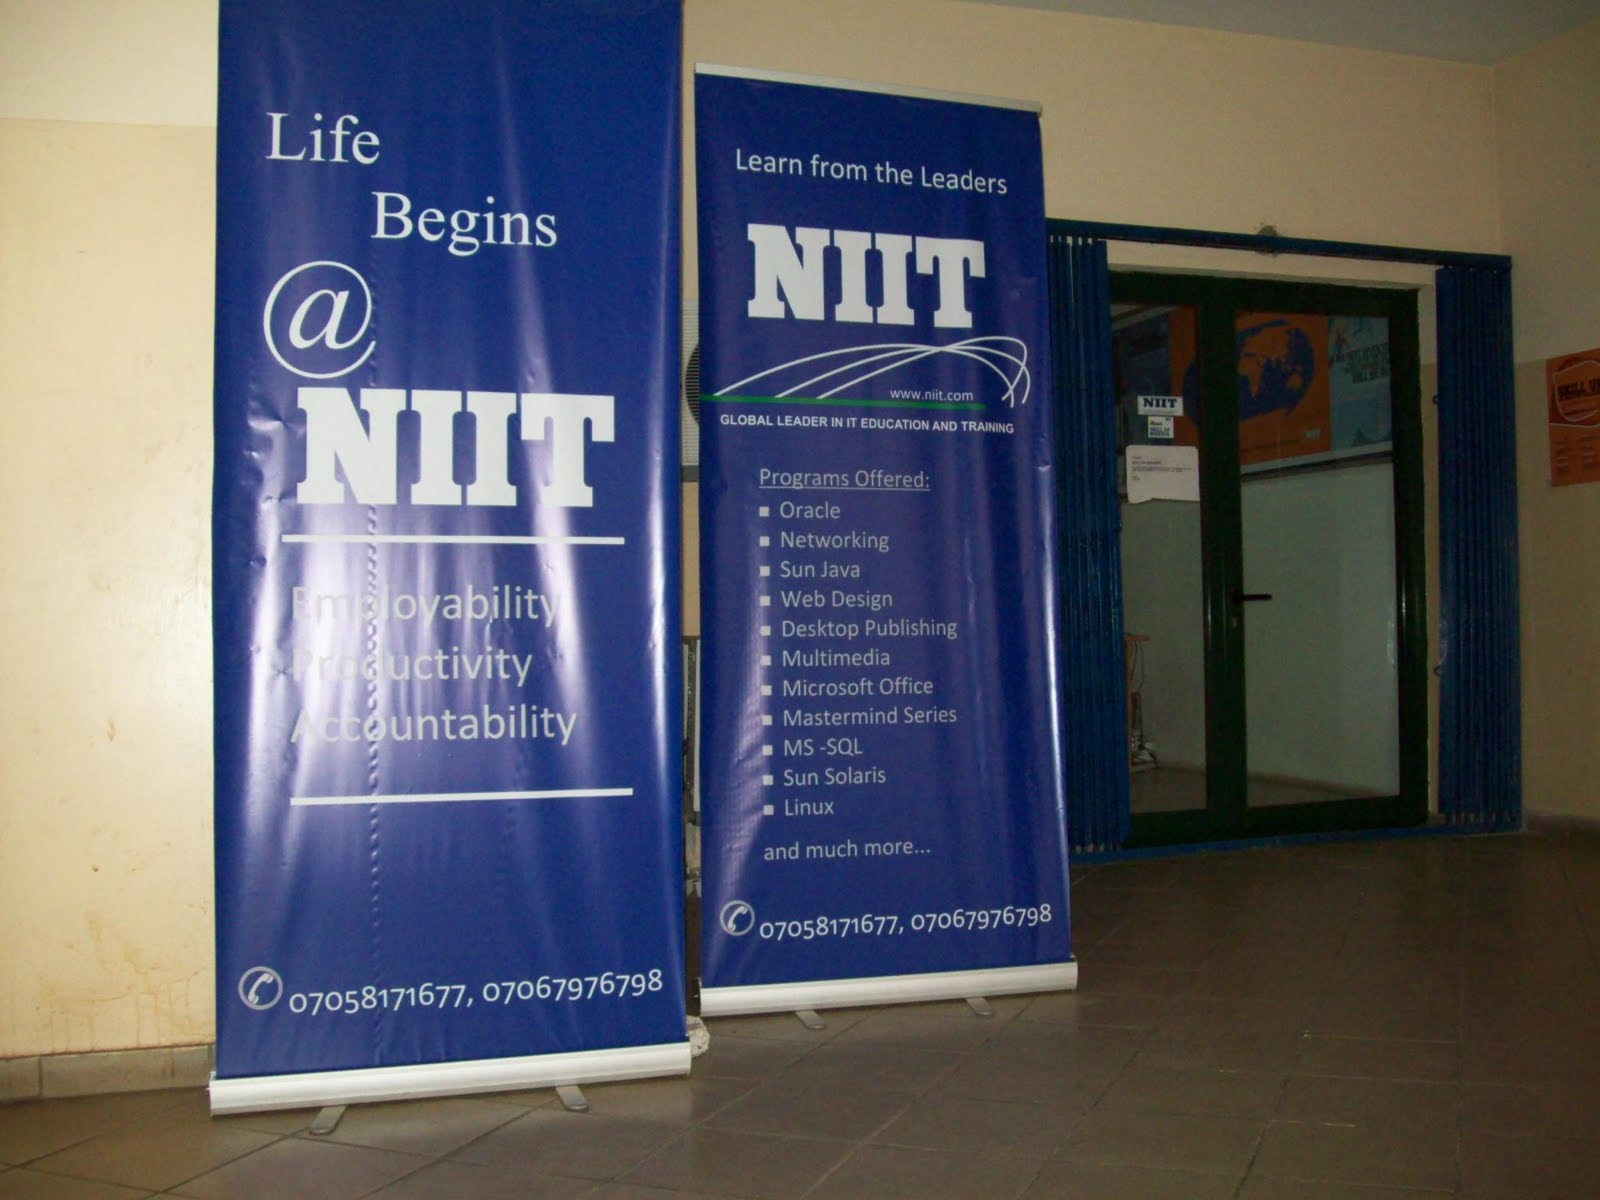 Niit nigeria study centres study oracle java mctip ccna etc below is a picture i snapped one of those days i was still studying java at niit onitsha yadclub